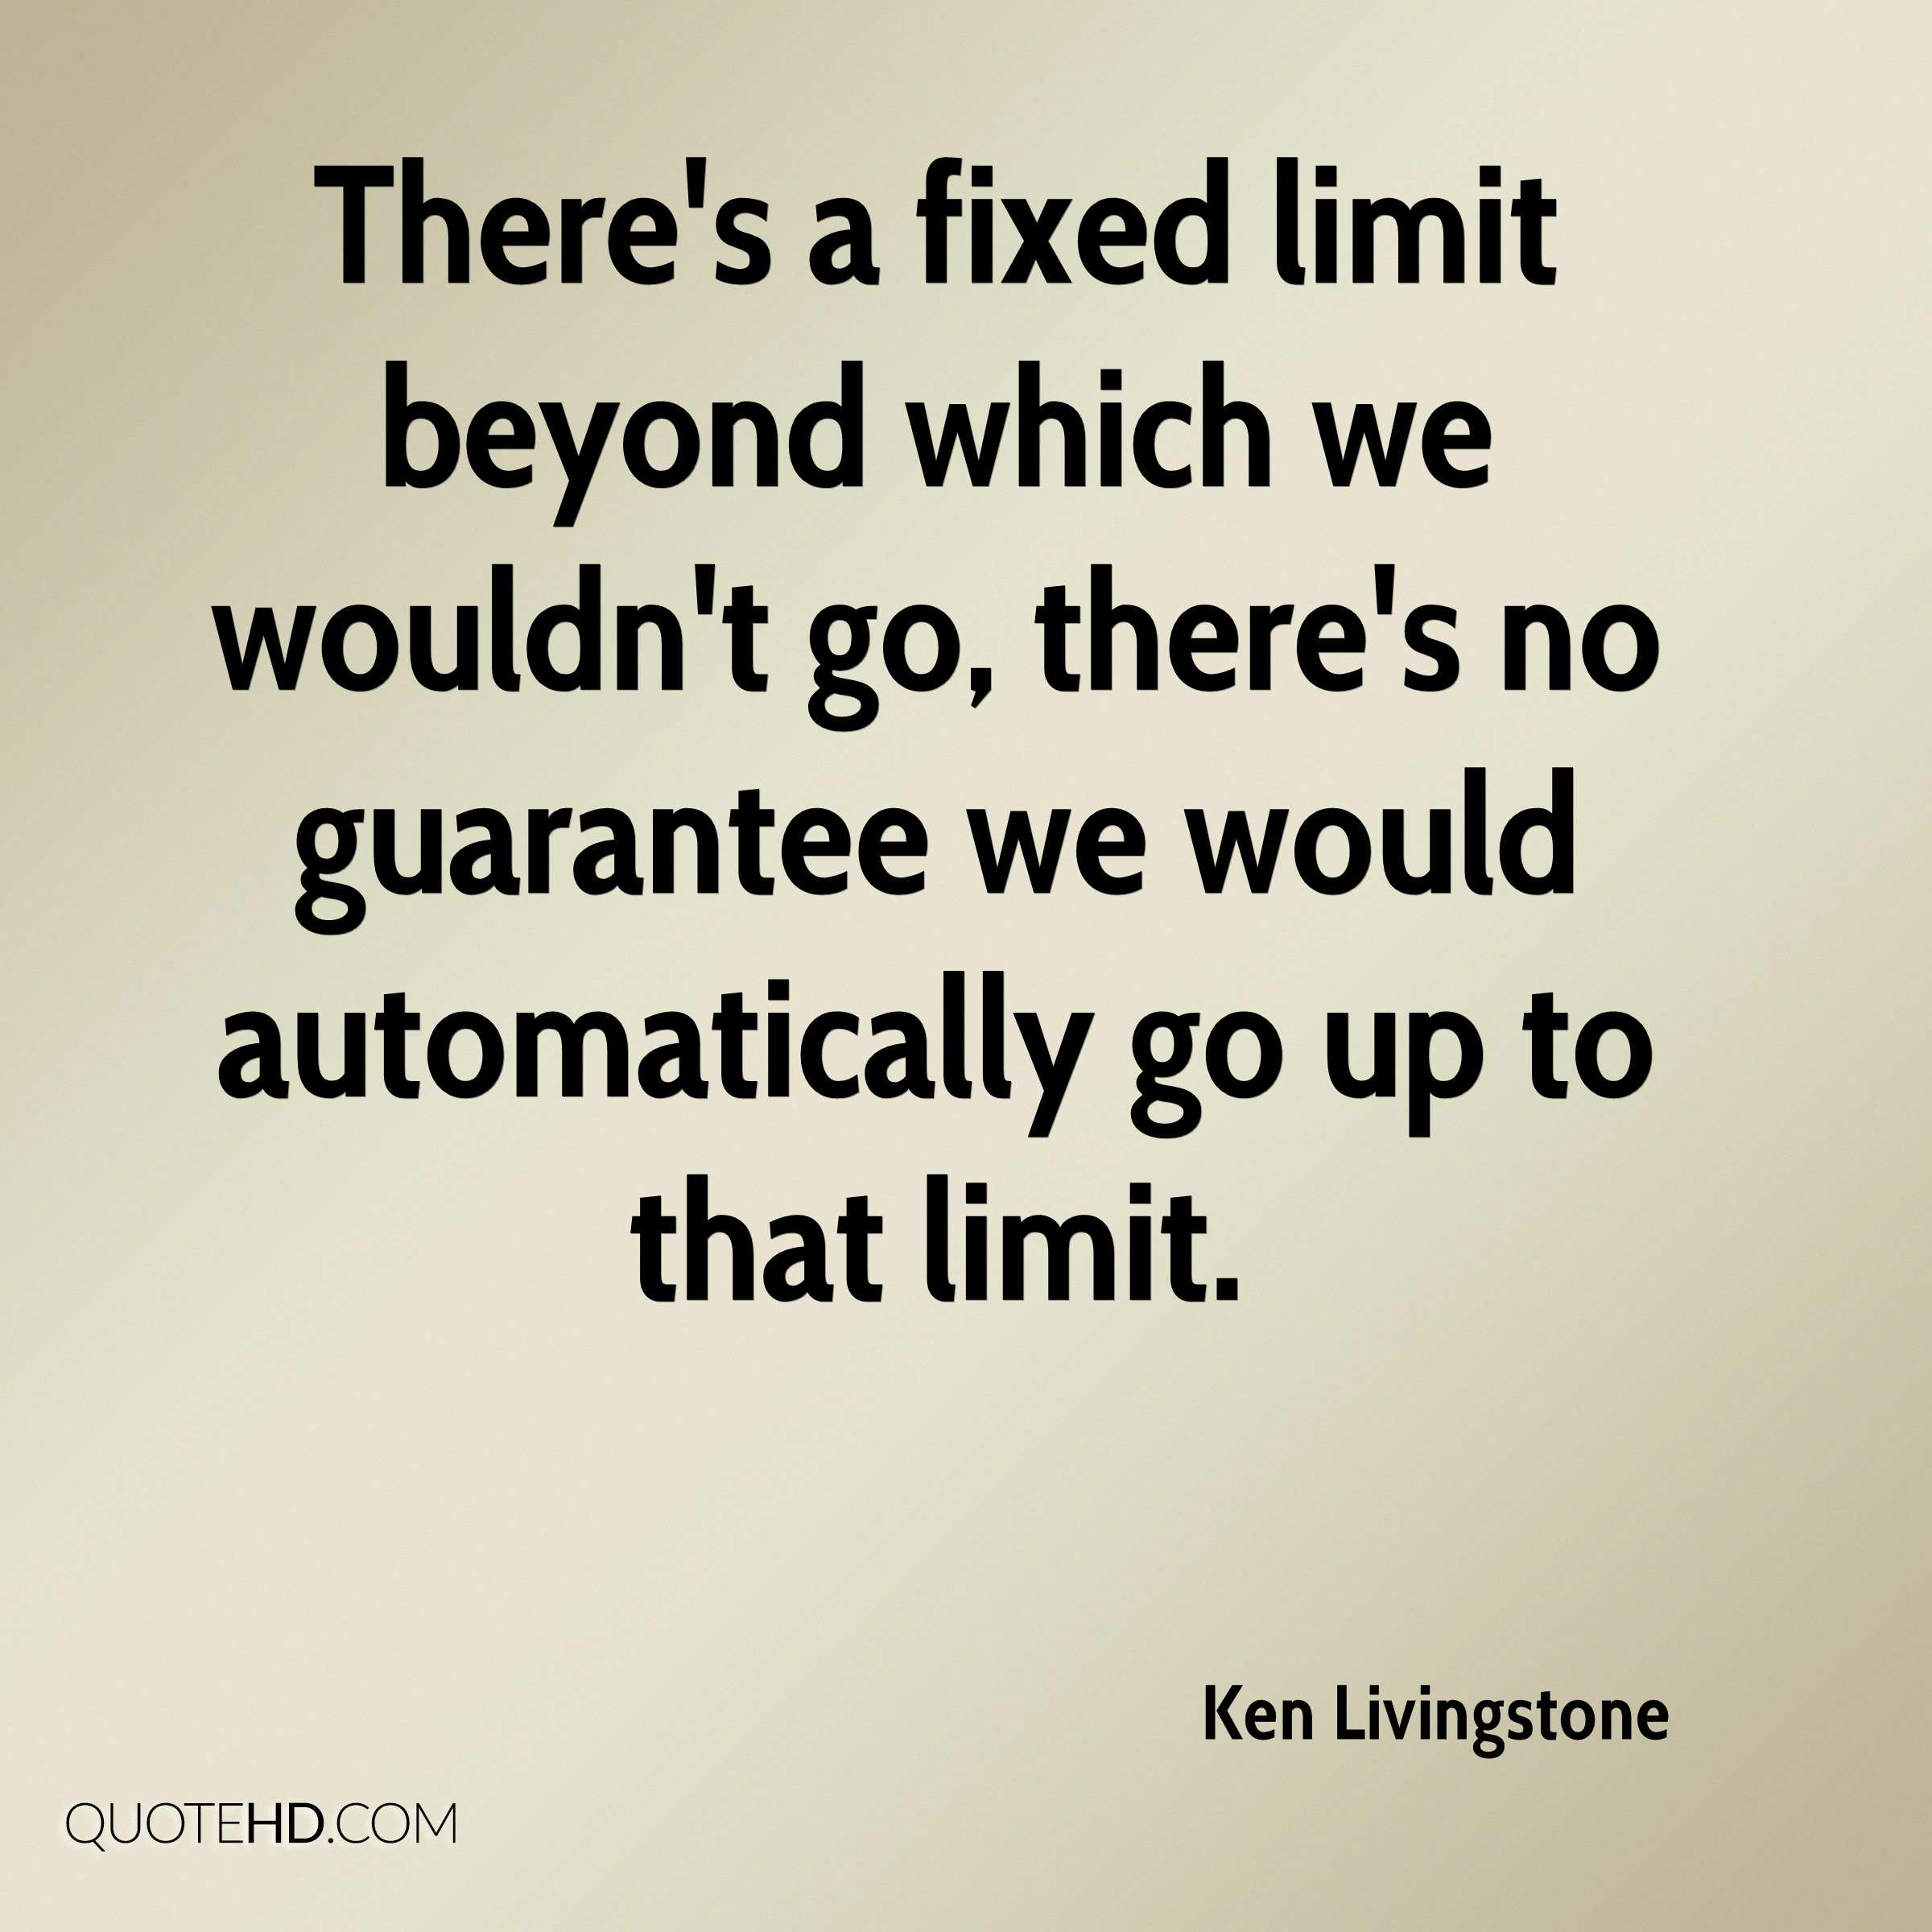 There's a fixed limit beyond which we wouldn't go, there's no guarantee we would automatically go up to that limit.